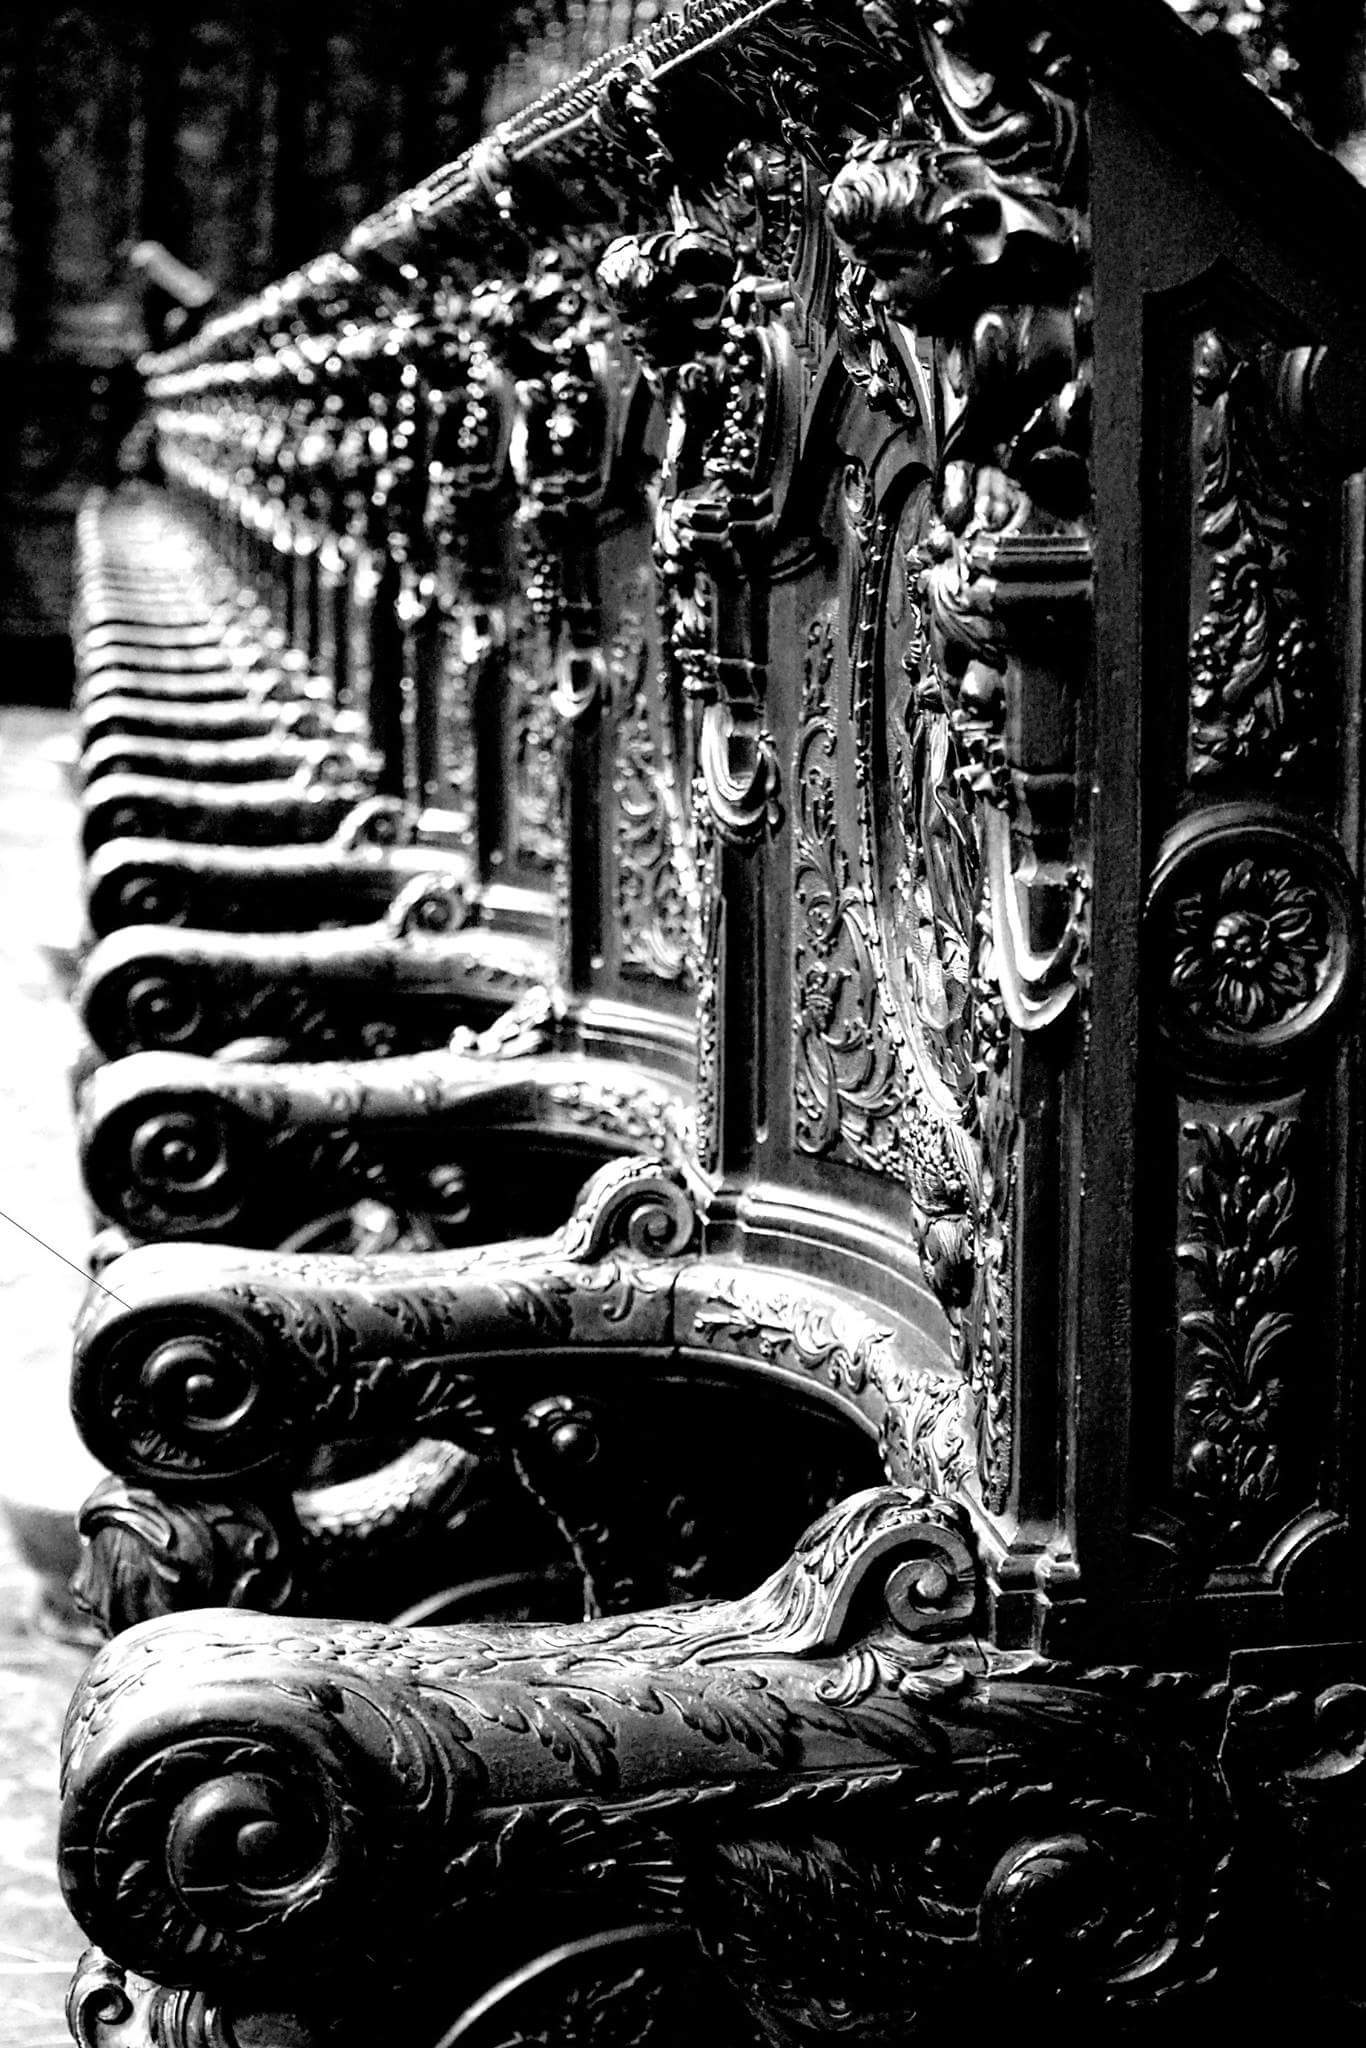 Order in The Mezquita by CMCP